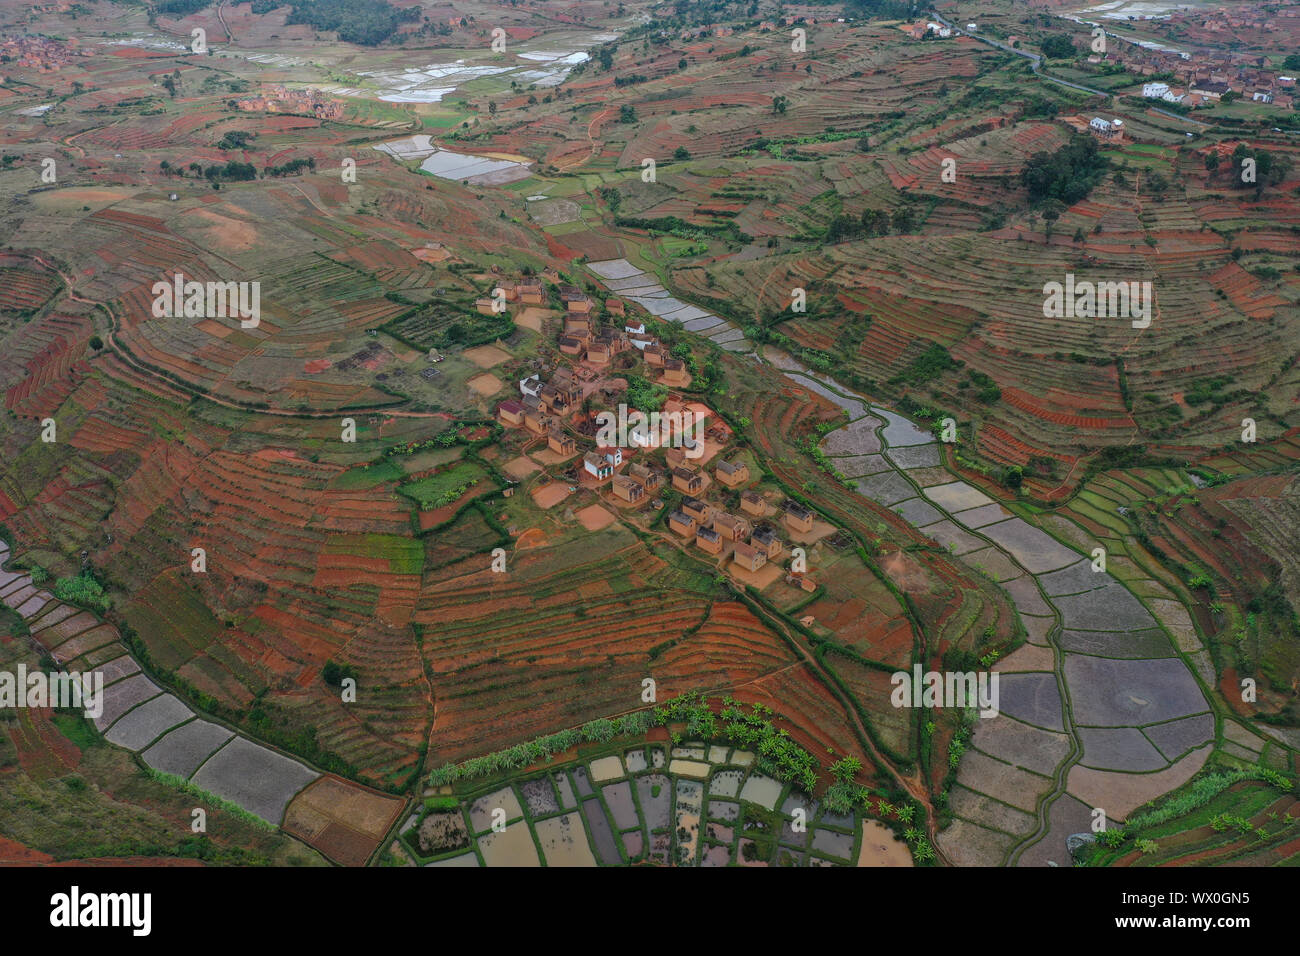 Rice fields and small villages near Ivato, Ambositra district, National Route RN7 between Ranomafana and Antsirabe, Madagascar, Africa Stock Photo